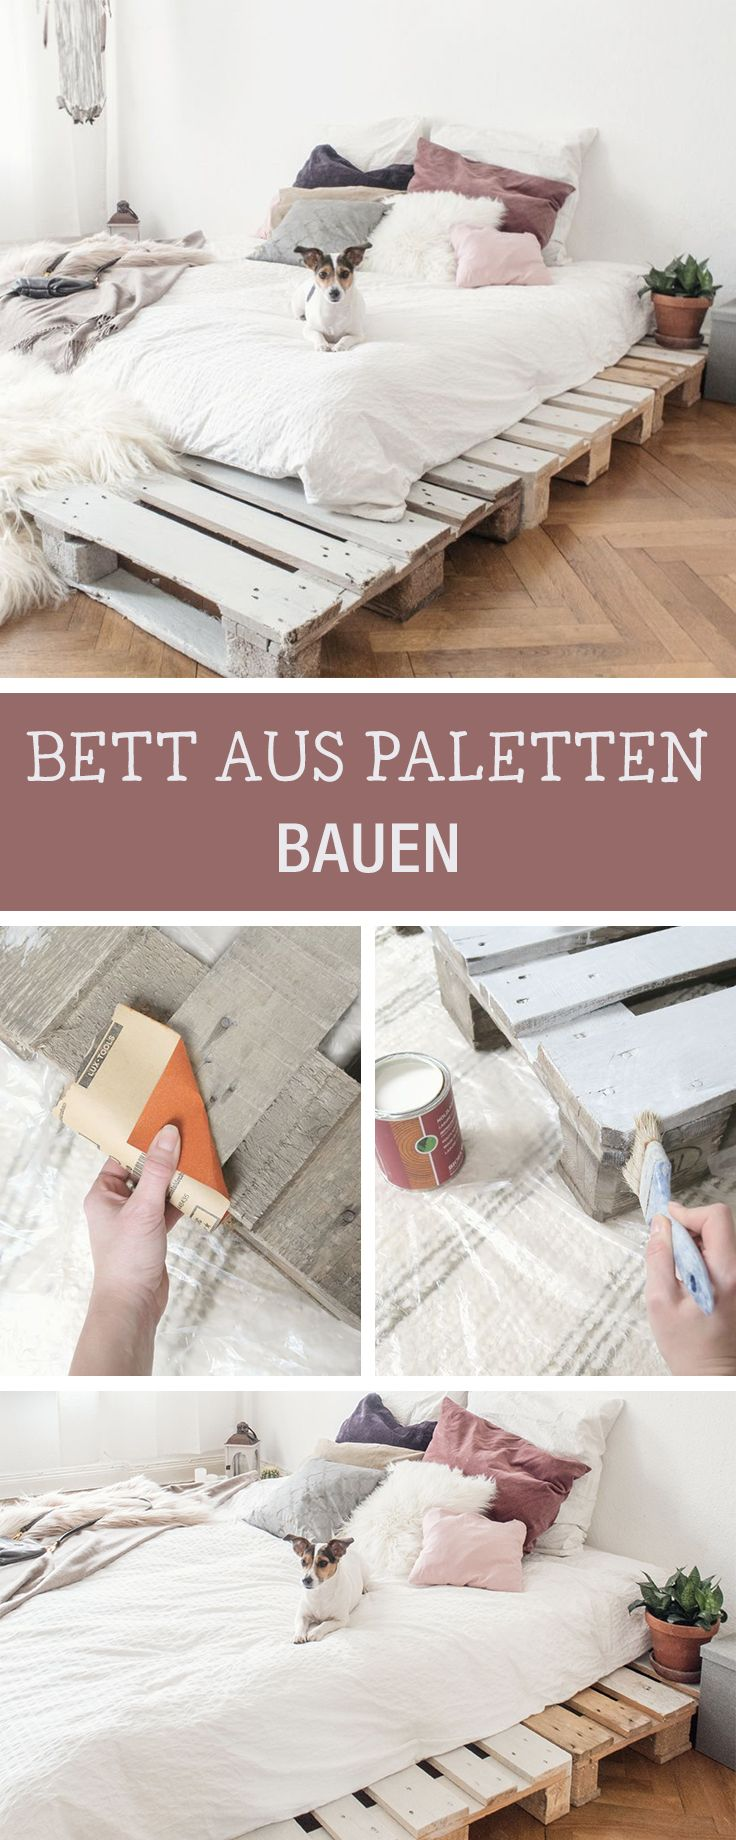 Ein Bett selberbauen aus Paletten, minimale Möbel bauen / how to build furniture: build a bed with pallets via DaWanda.com